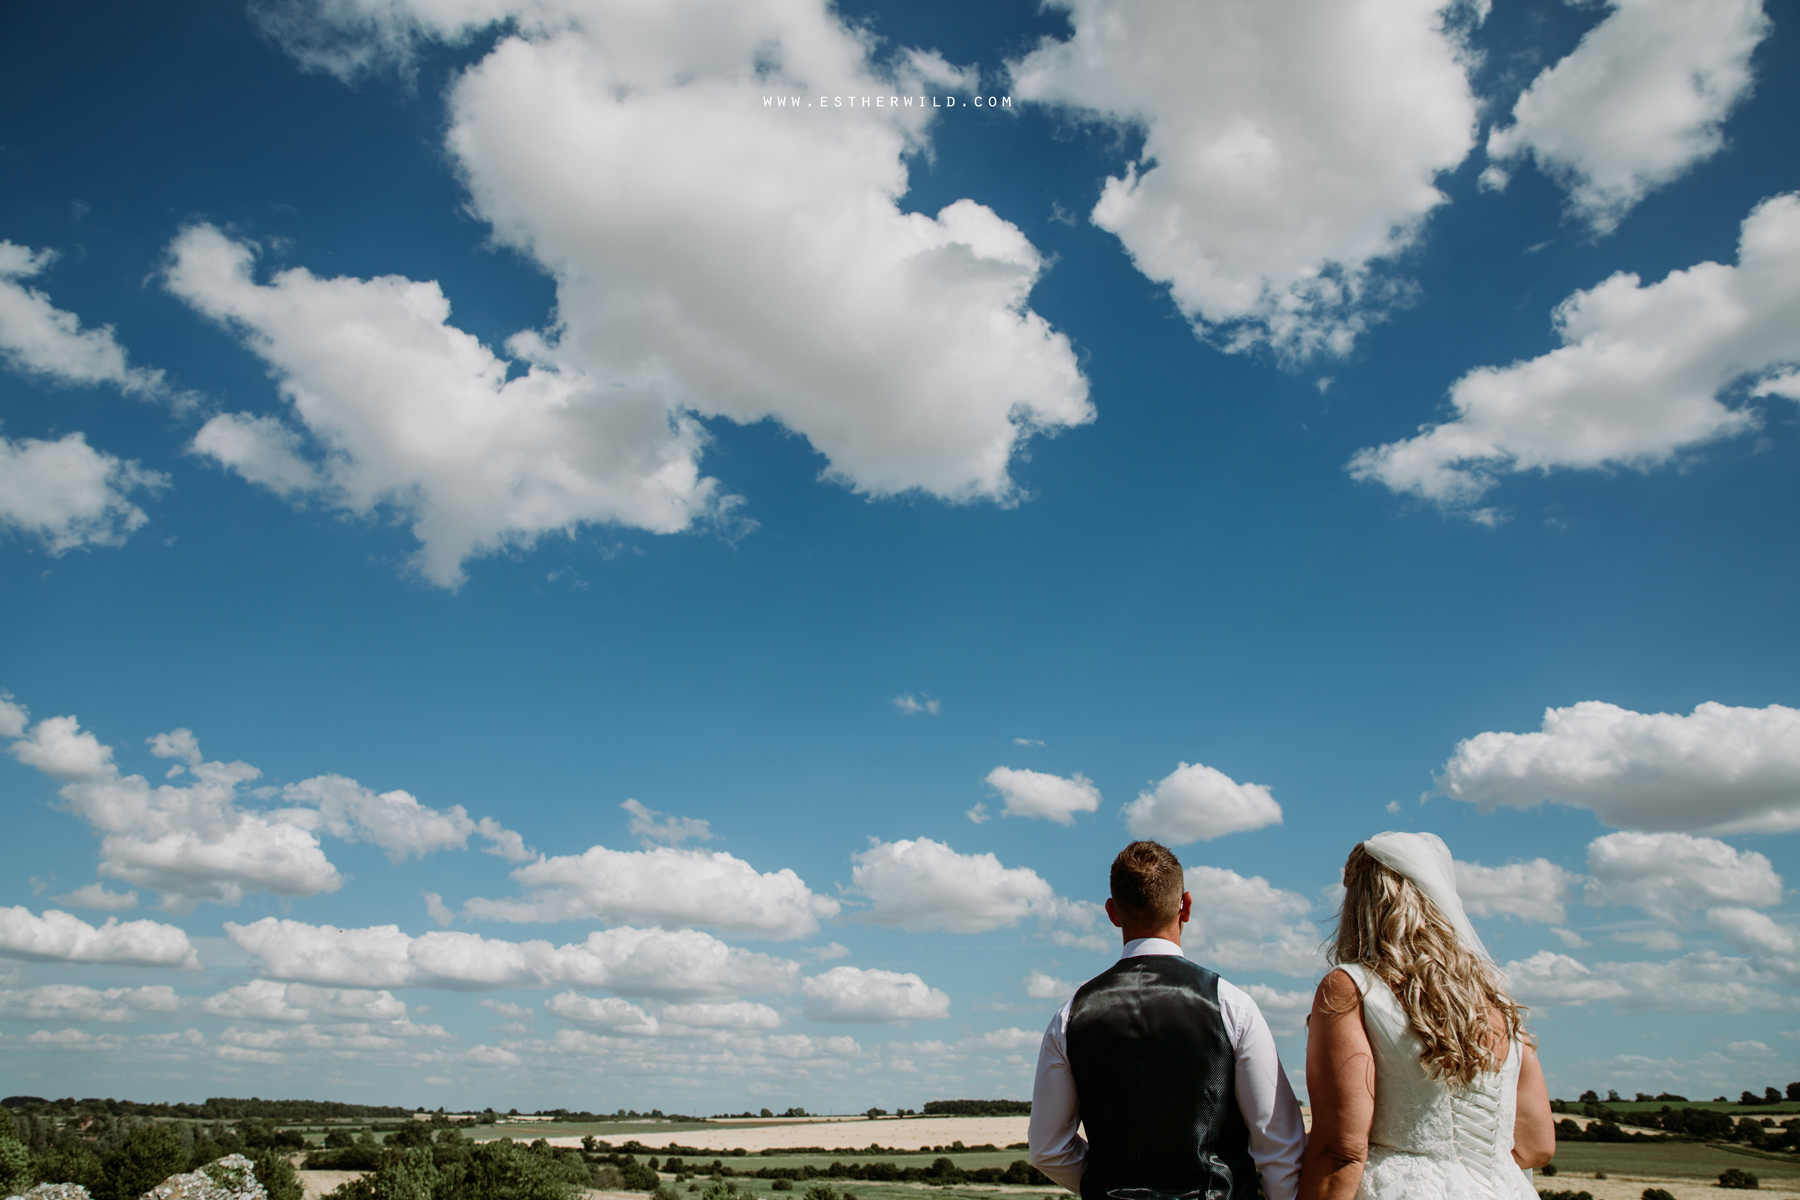 Swaffham_Wedding_Castle_Acre_Norfolk_Esther_Wild_Photographer_Wedding_Photography_3R8A1423.jpg